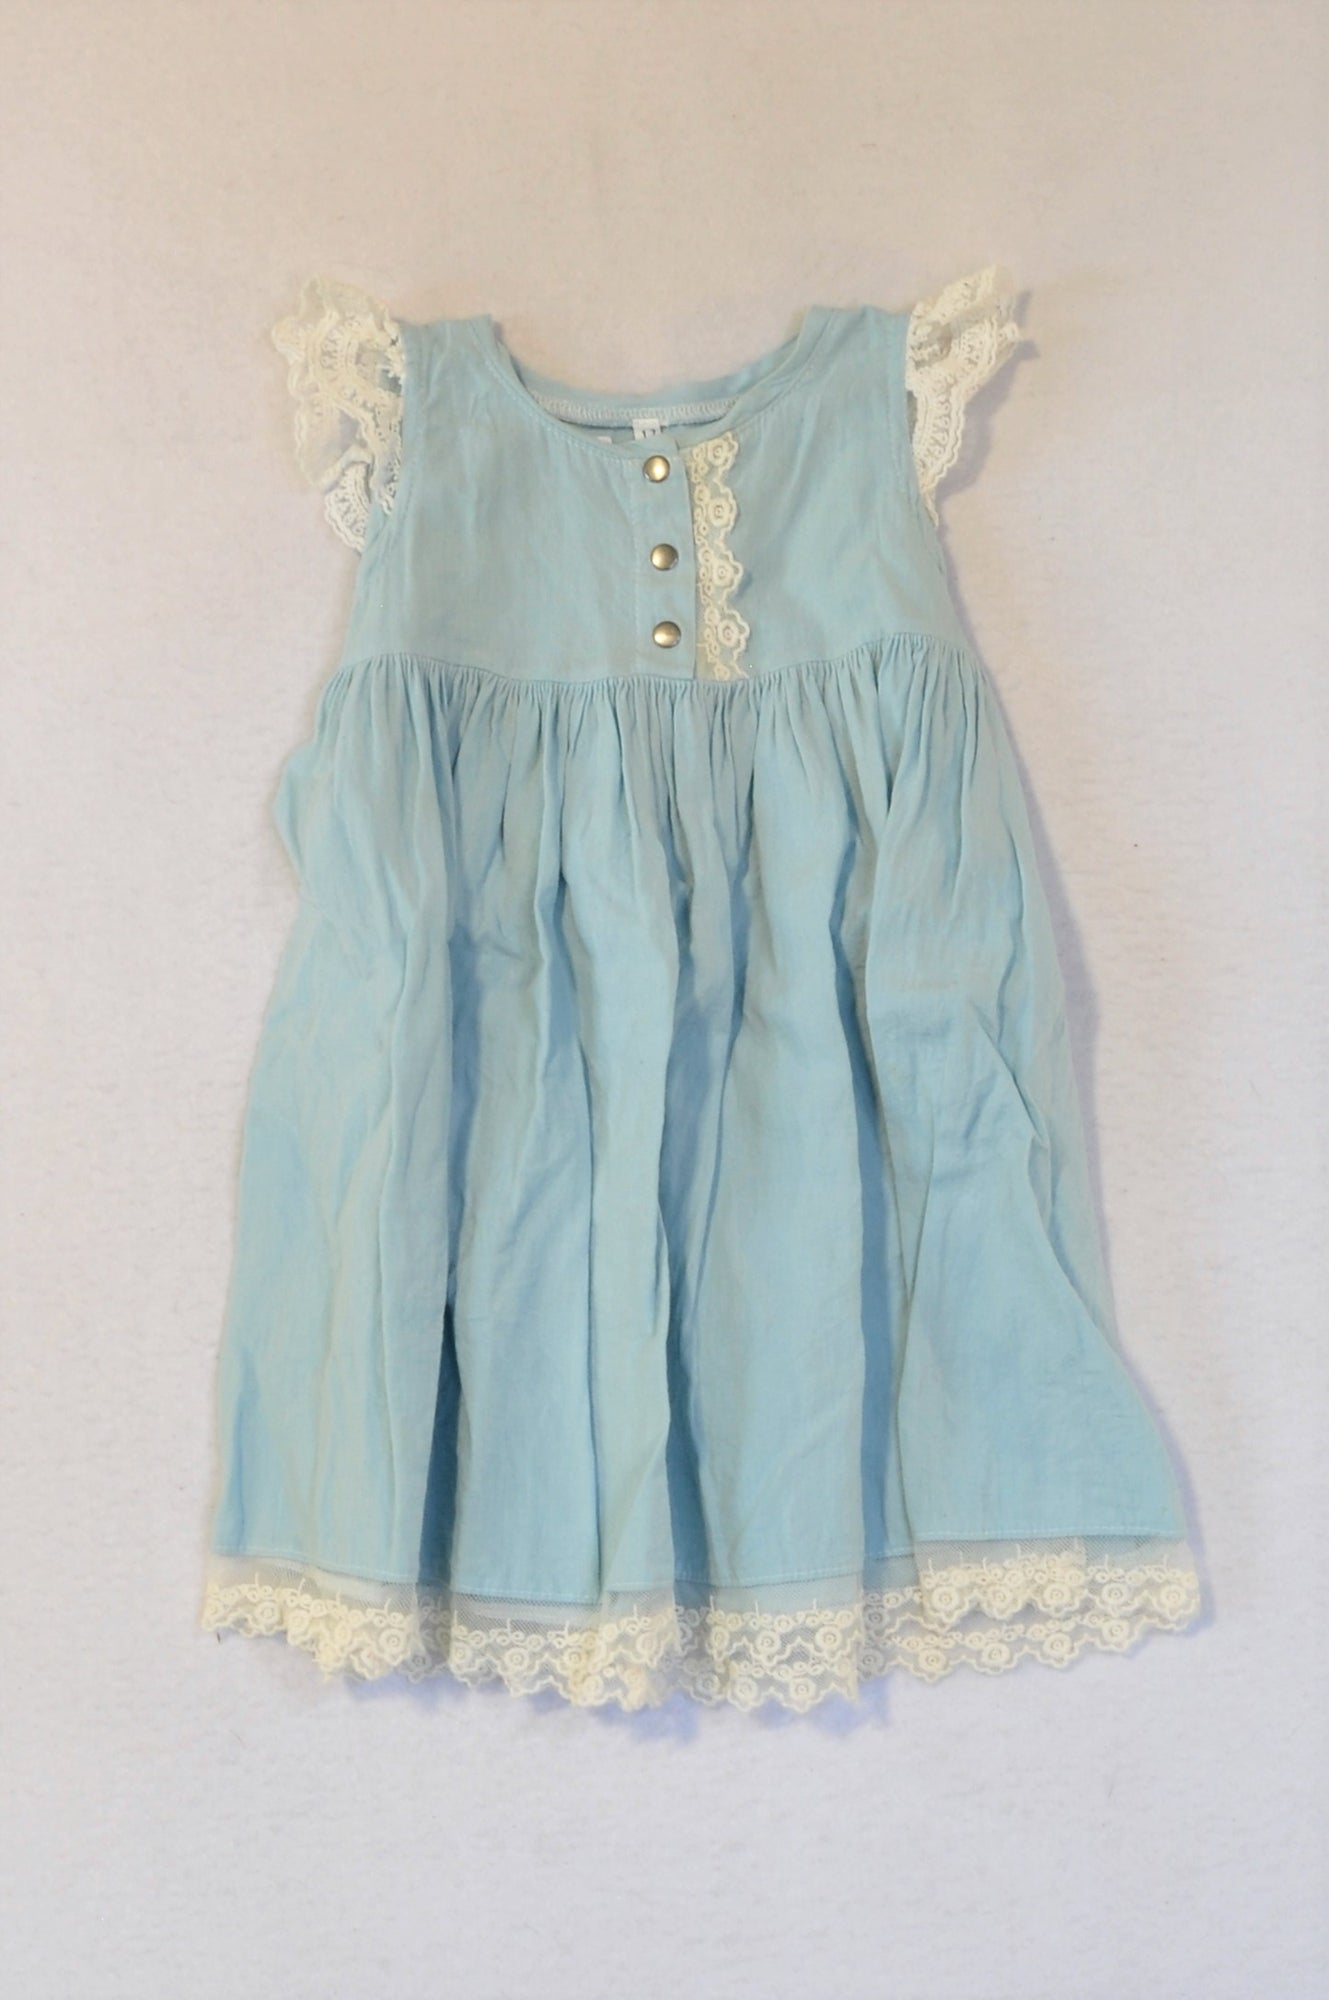 Meerkat Light Blue Lace Trim Dress Girls 1-2 years